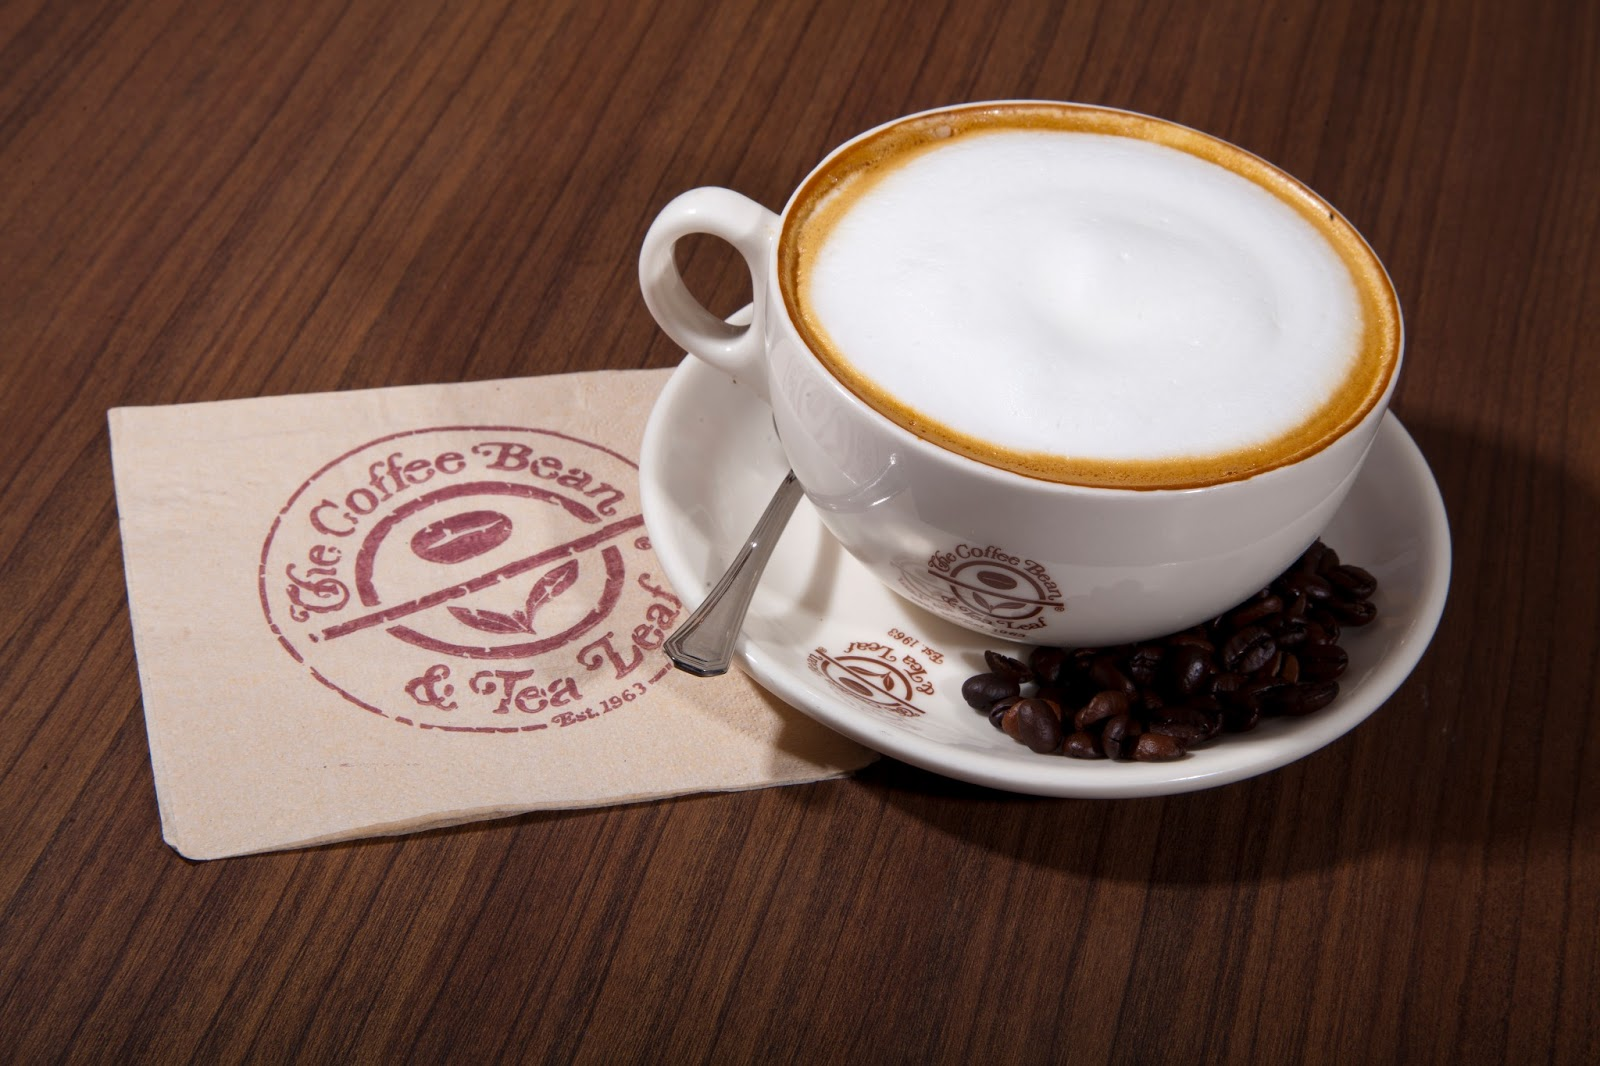 the coffee bean 14 verified coffee bean and tea leaf coupons and promo codes as of aug 18 popular now: 25% off 6 1lb or 2lb bags of the same flavor trust couponscom for coffee.